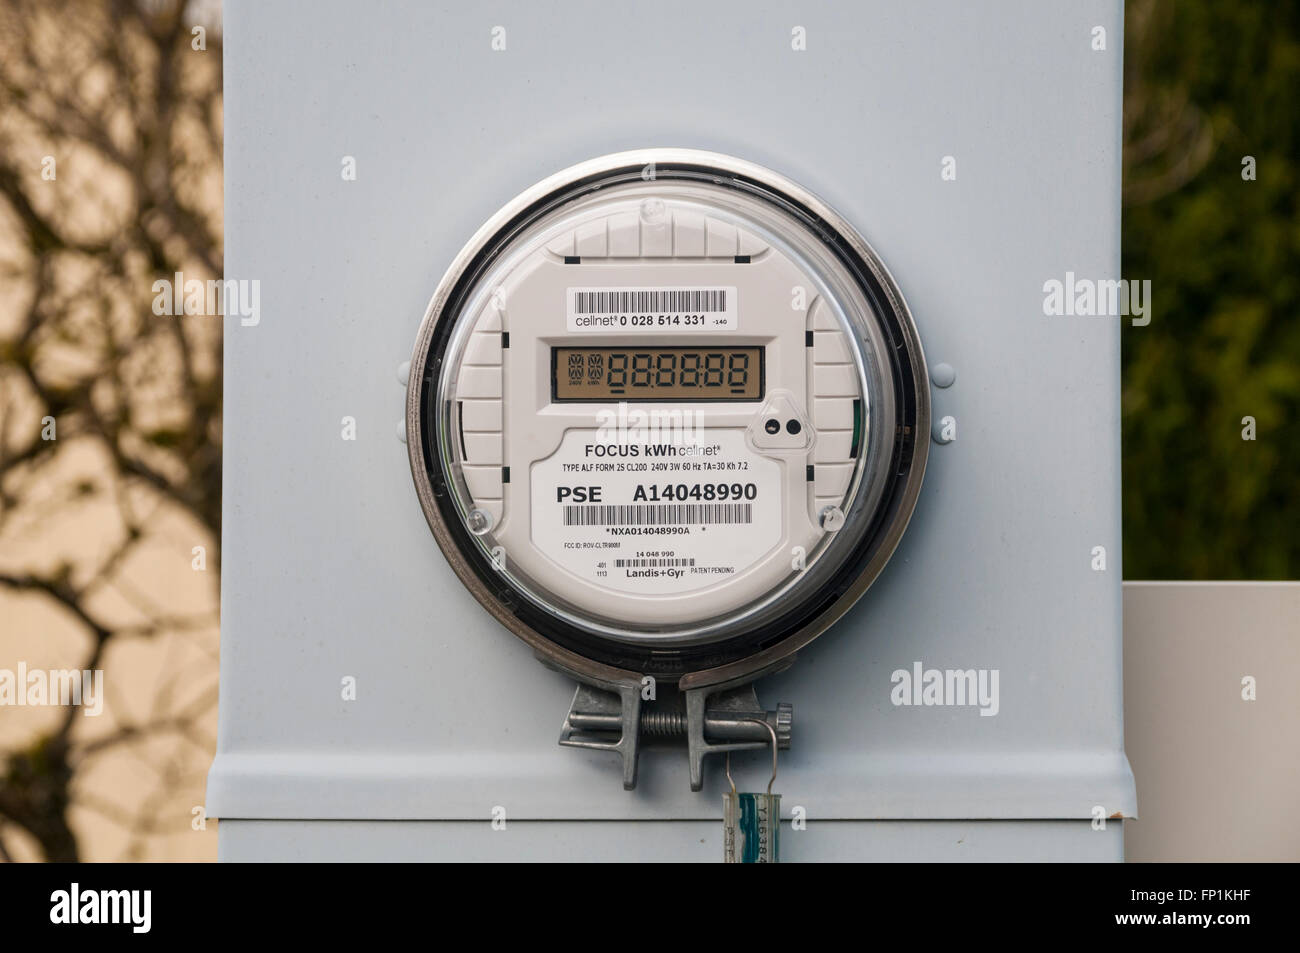 Electric meter for a mobile home park. Stock Photo